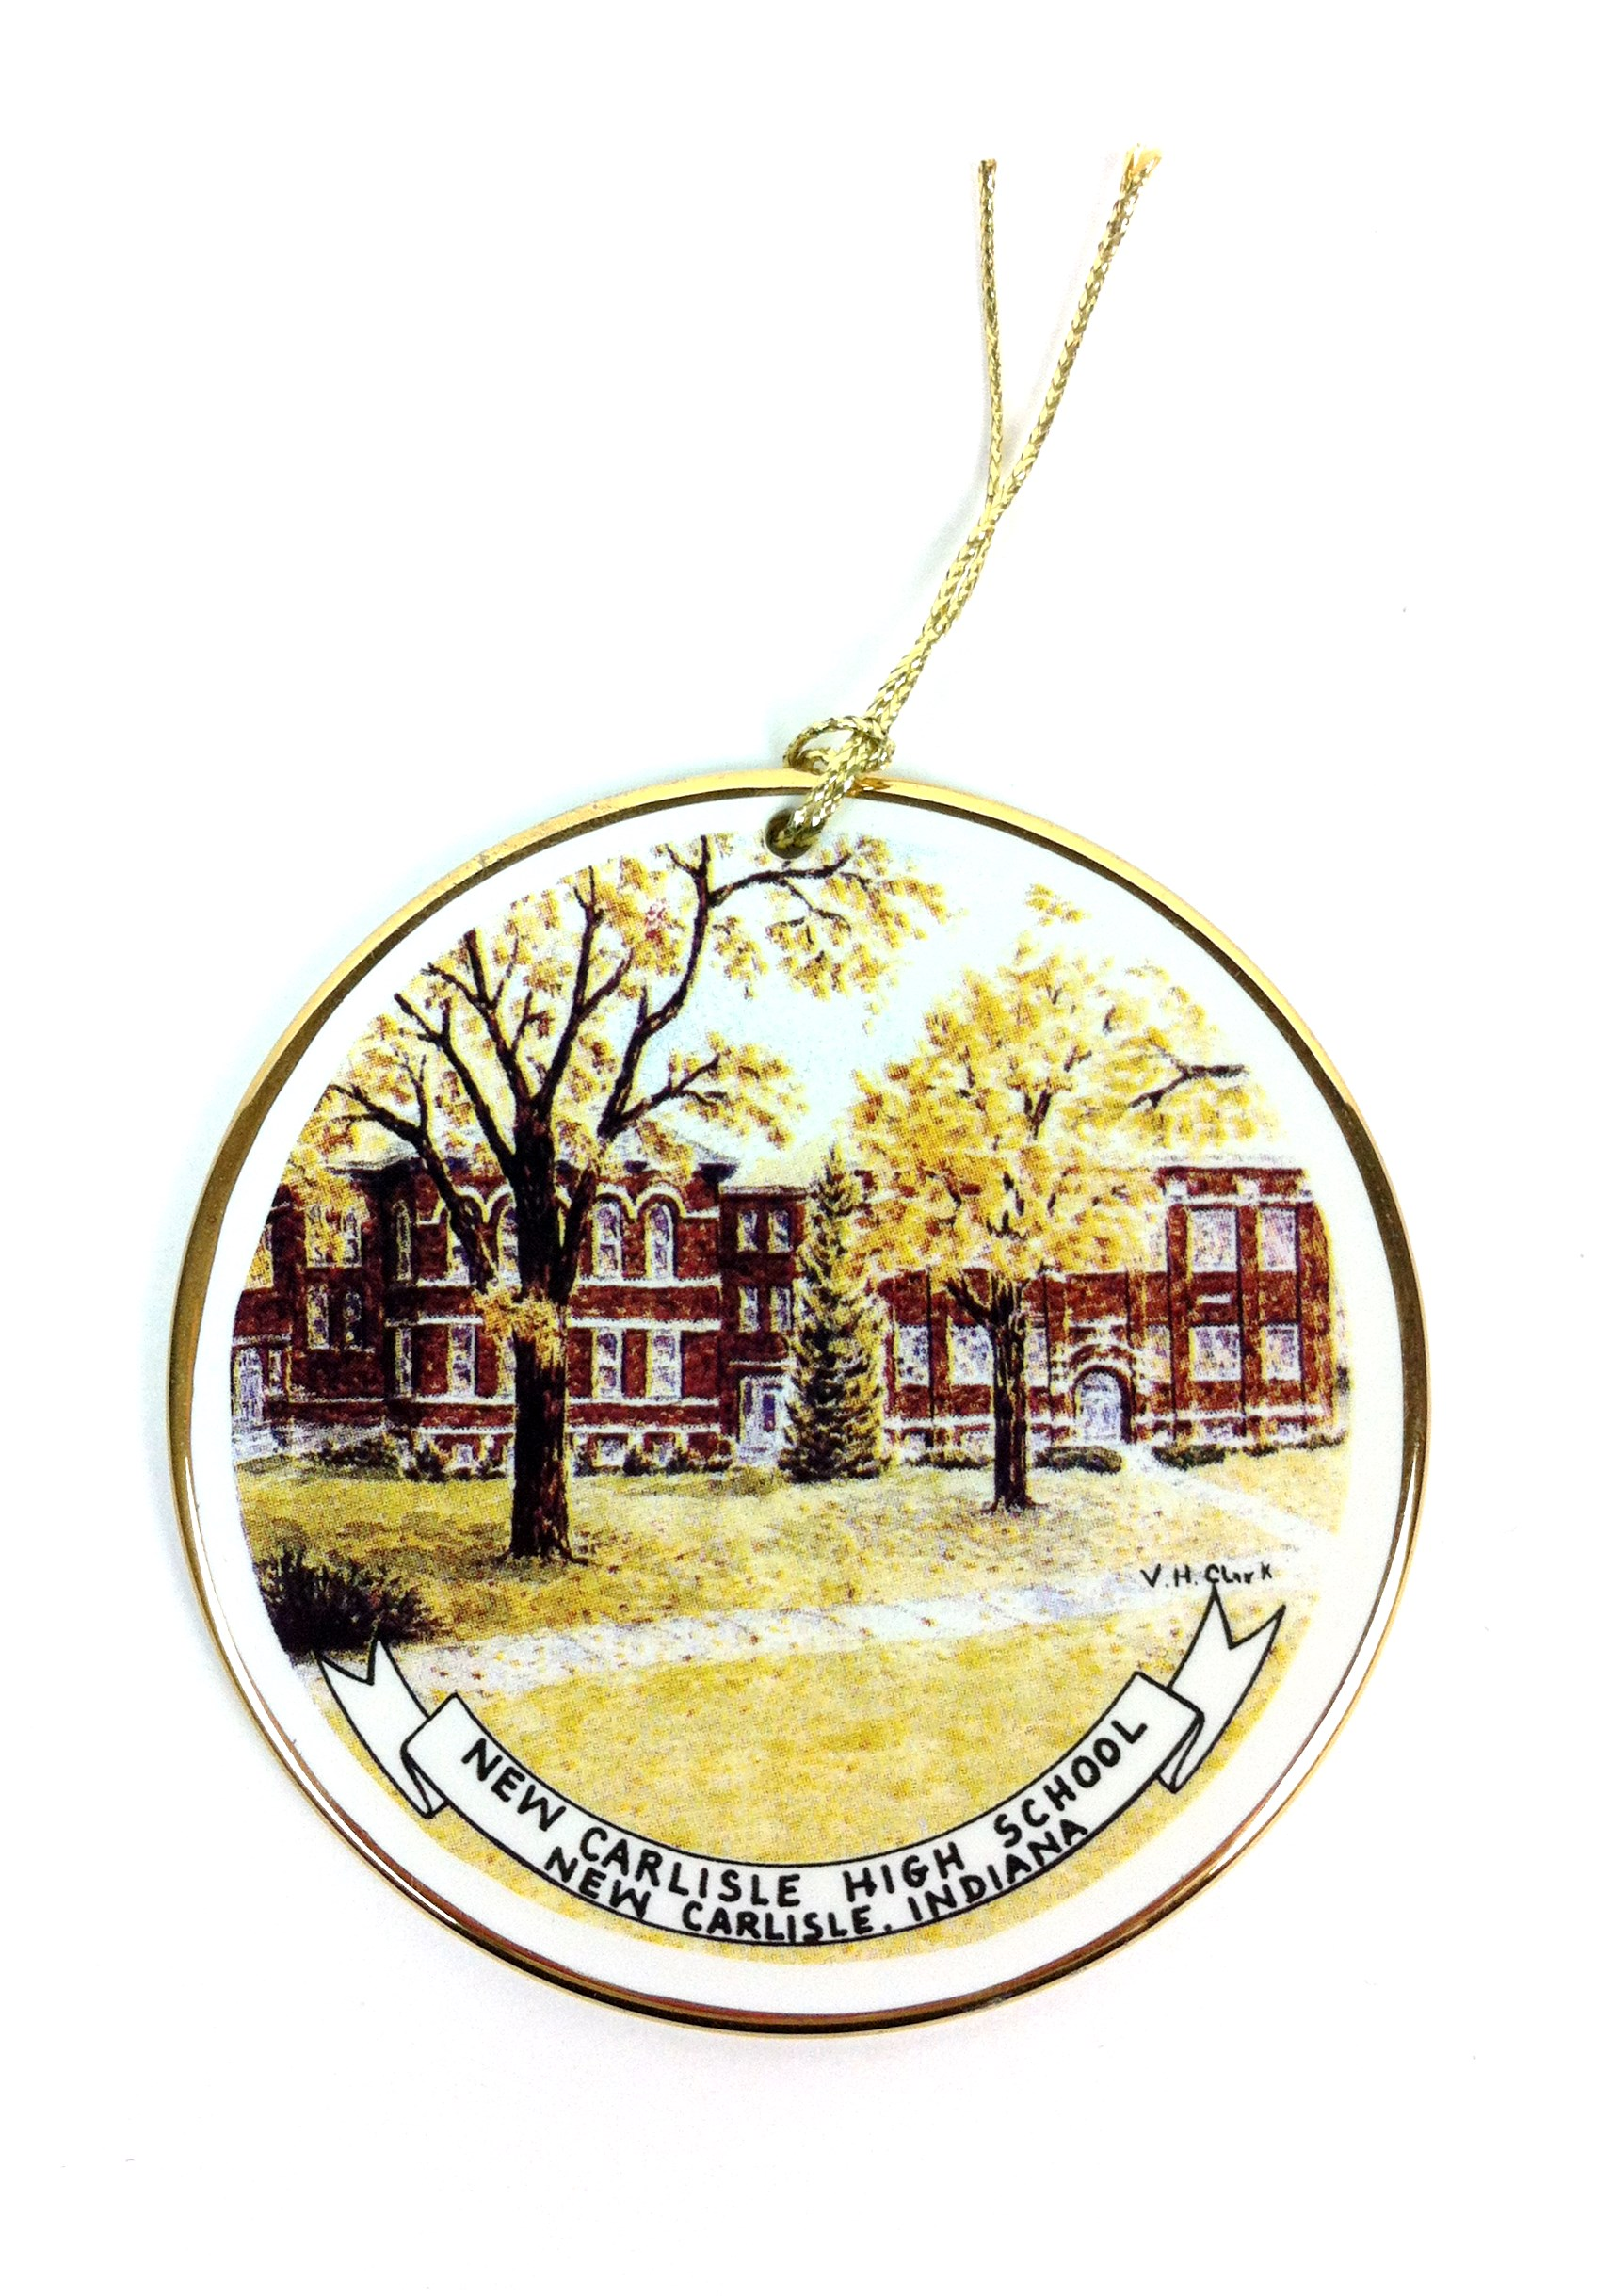 New Carlisle High School Medallion